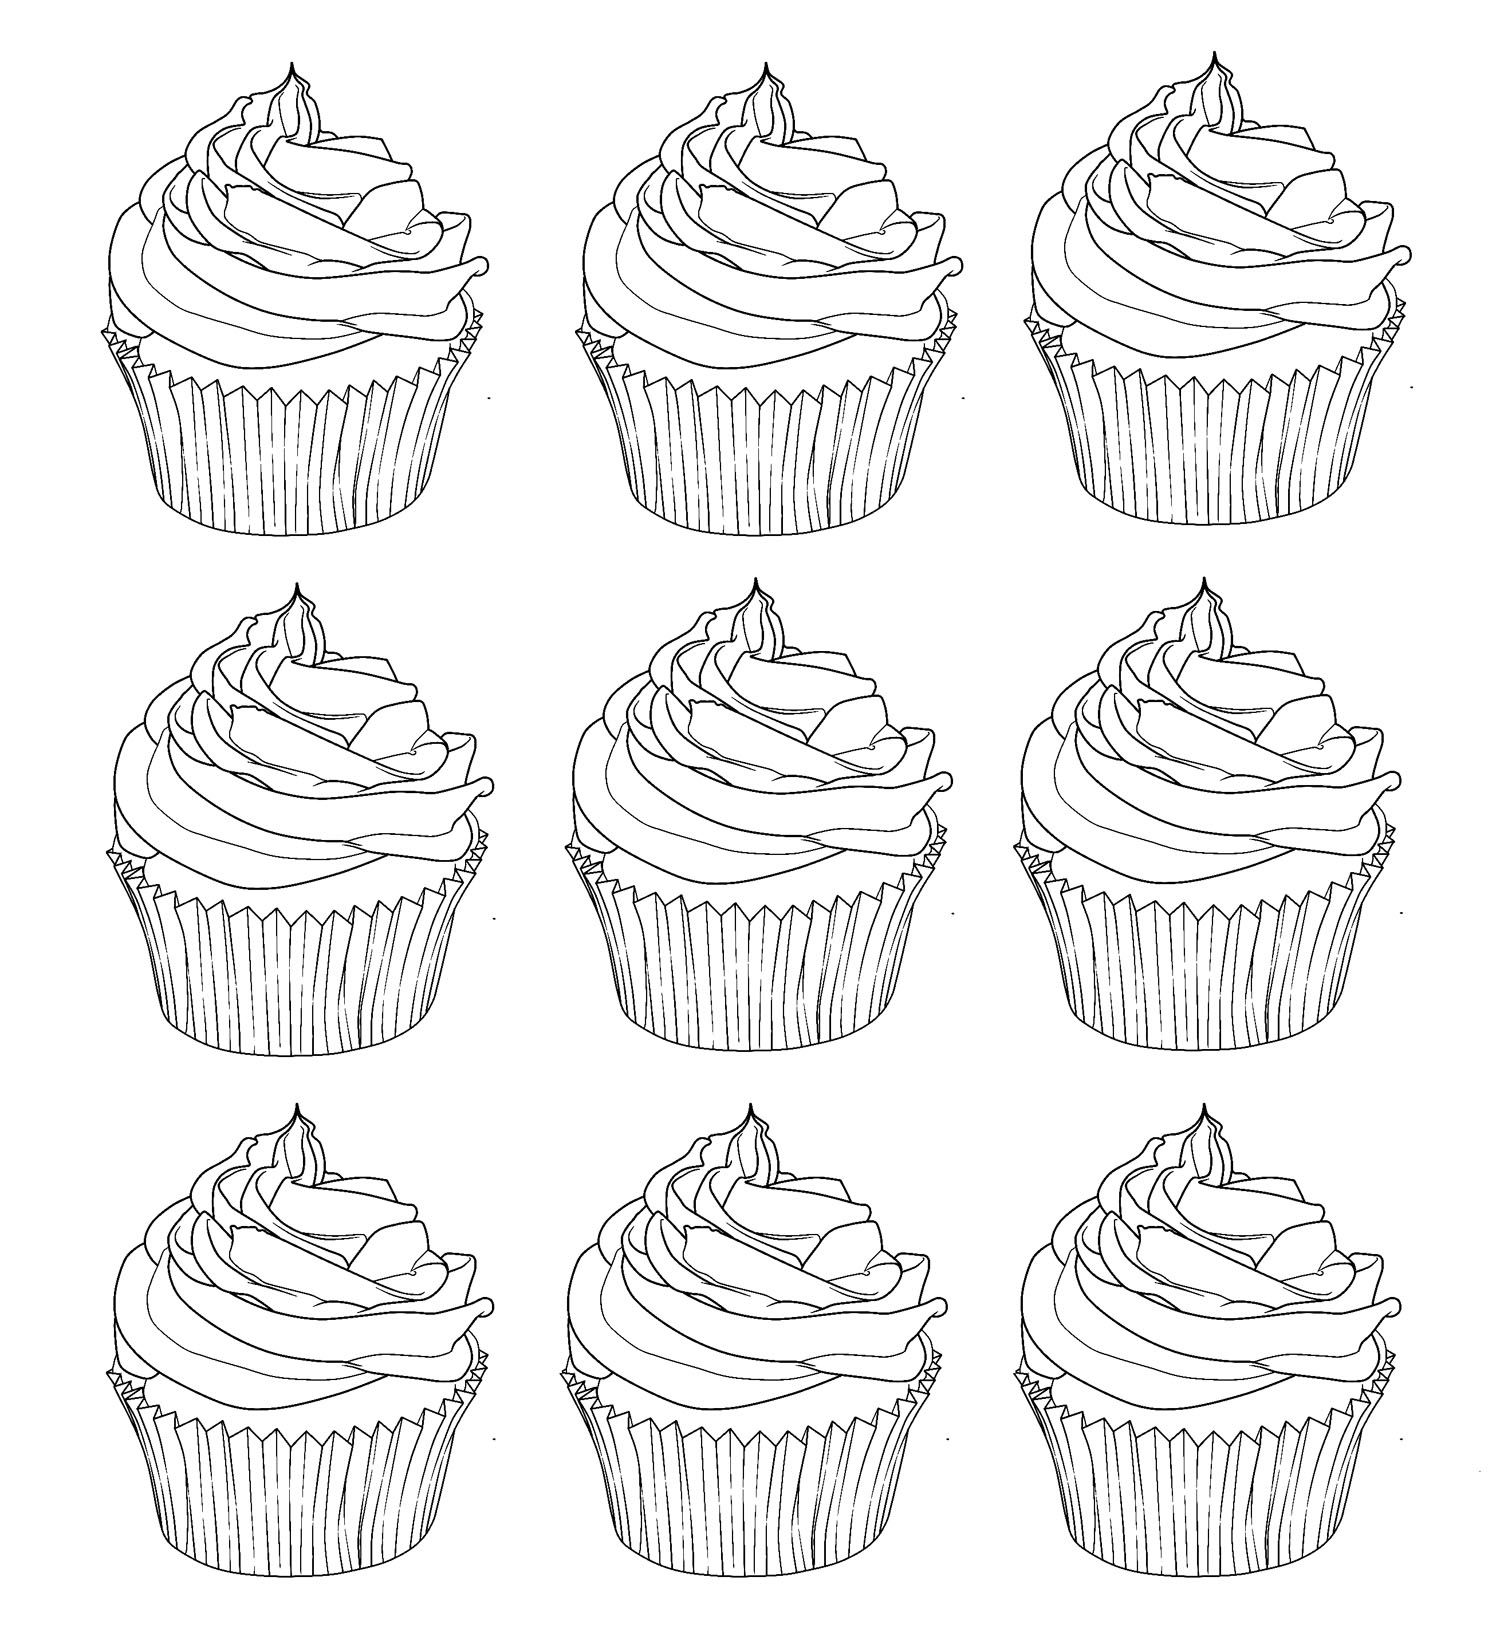 - Cupcakes Warhol - Cupcakes And Cakes Coloring Pages For Adults